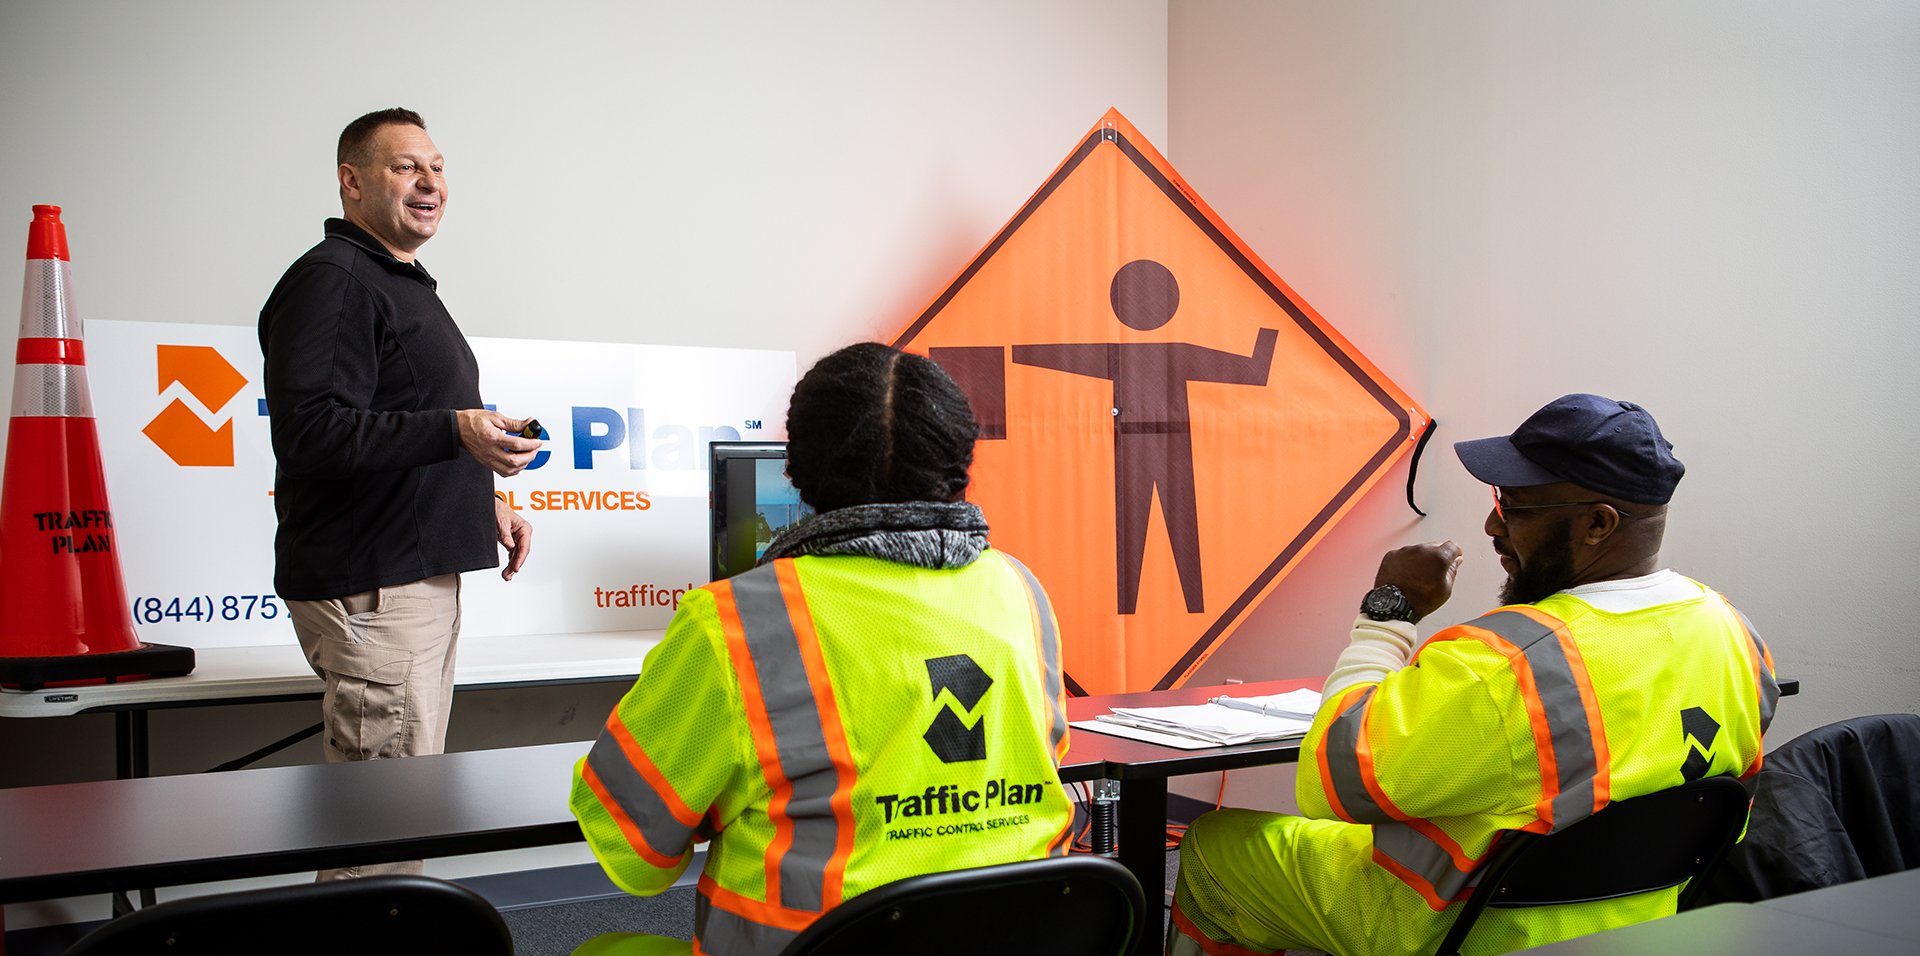 Trained traffic control specialists